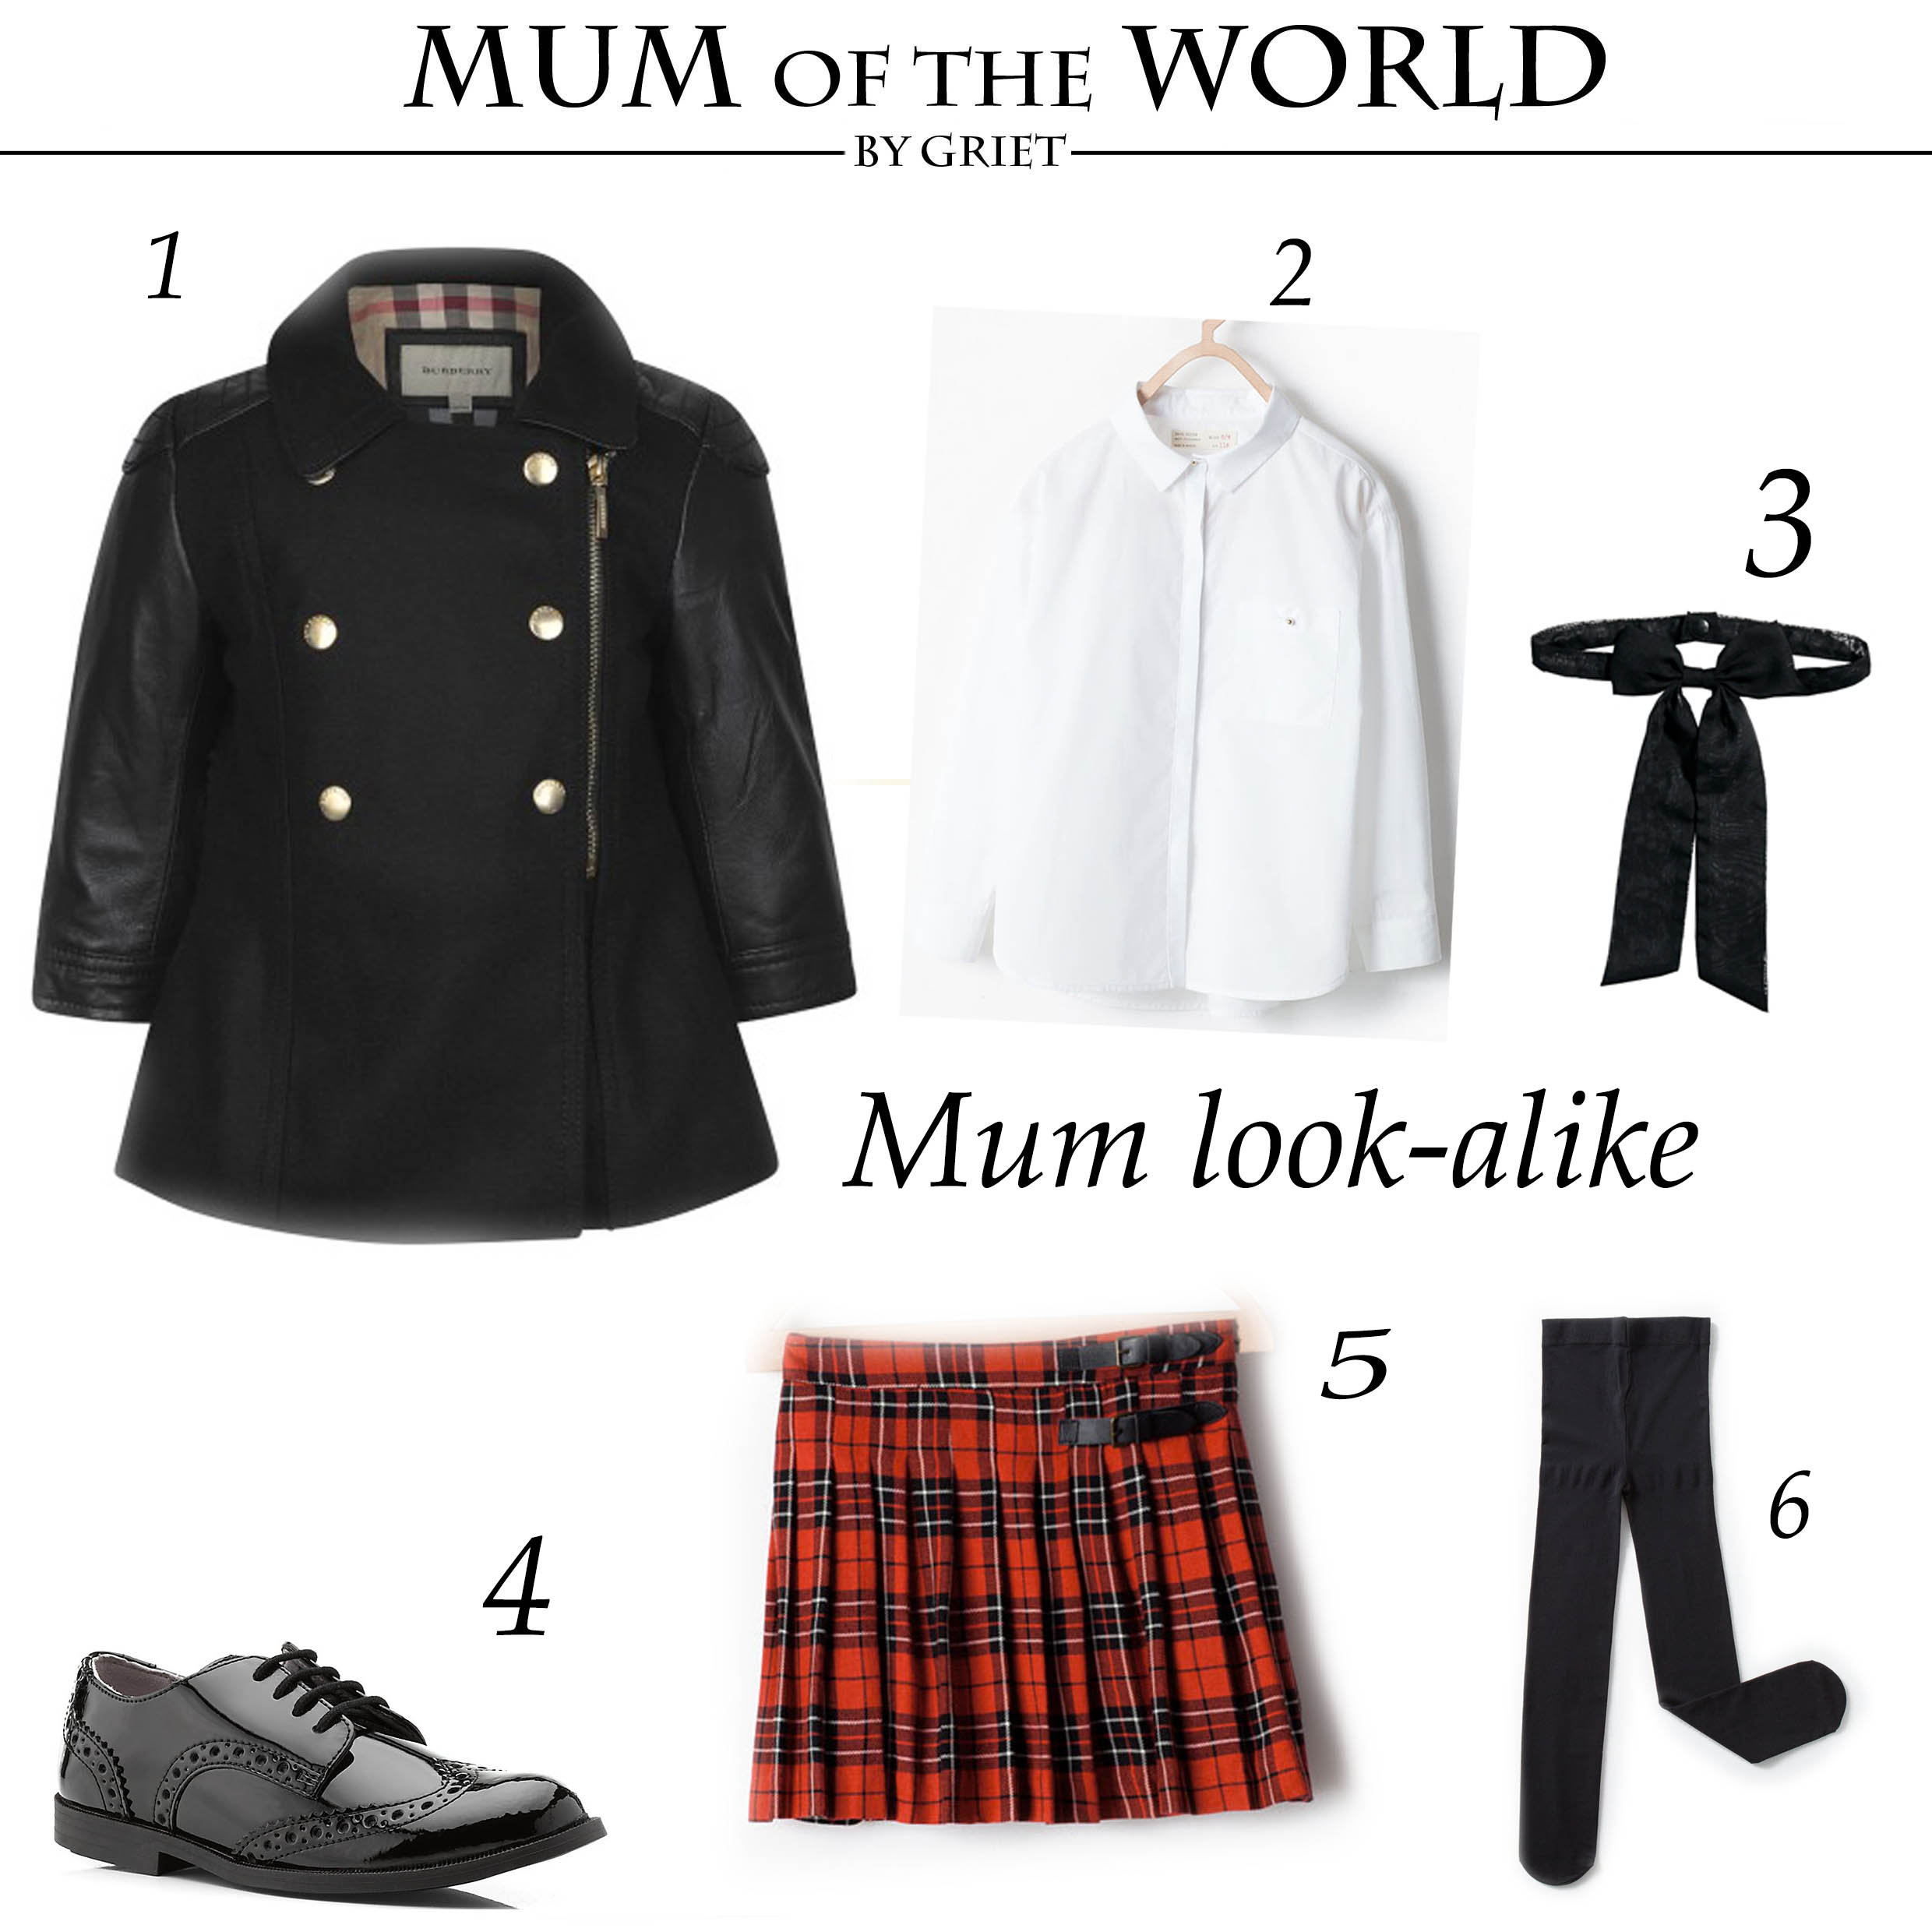 mum of the world kids fashion mum look alike. Black Bedroom Furniture Sets. Home Design Ideas